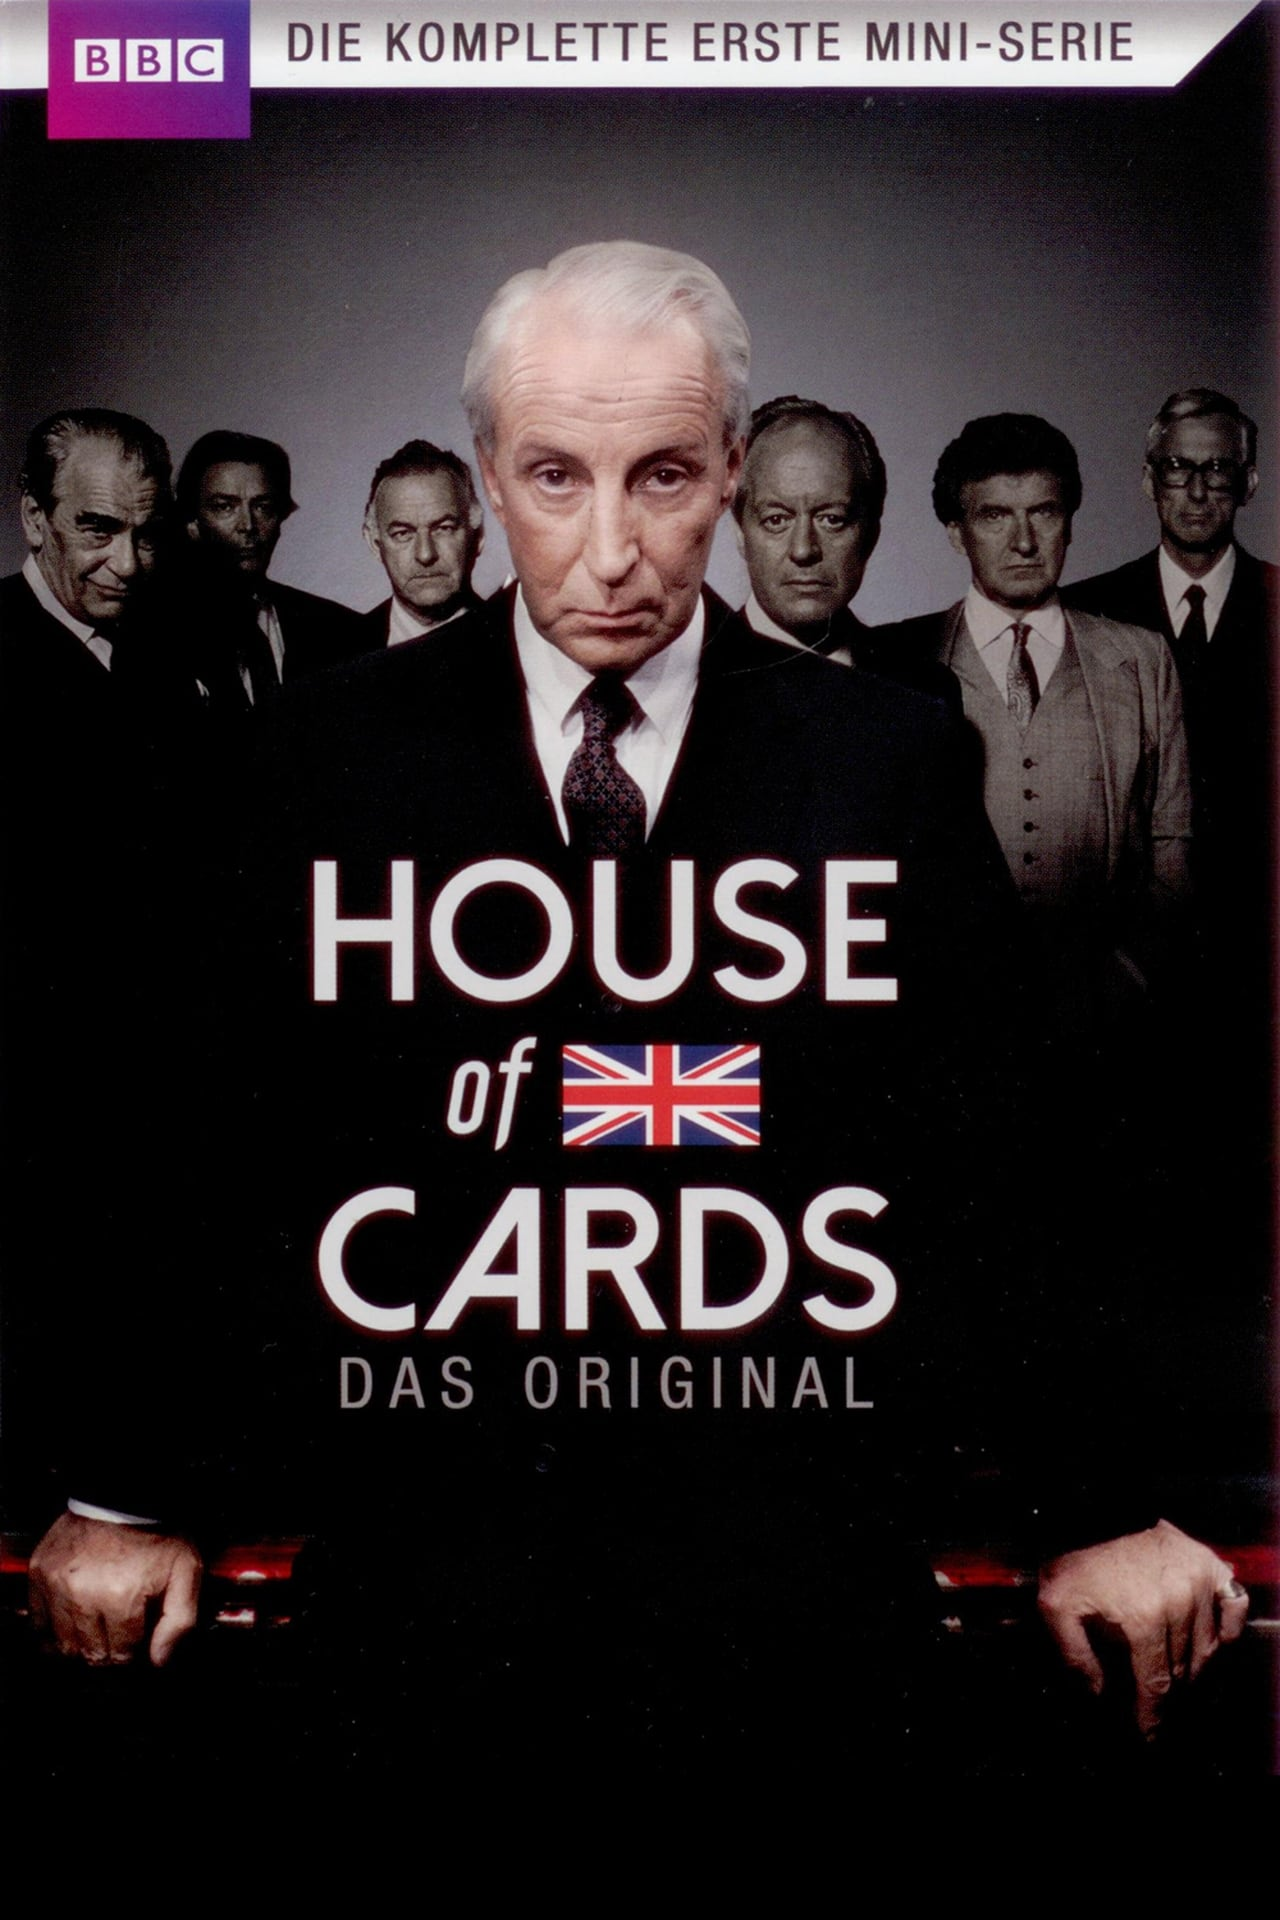 House Of Cards Season 1 (1990) putlockers cafe